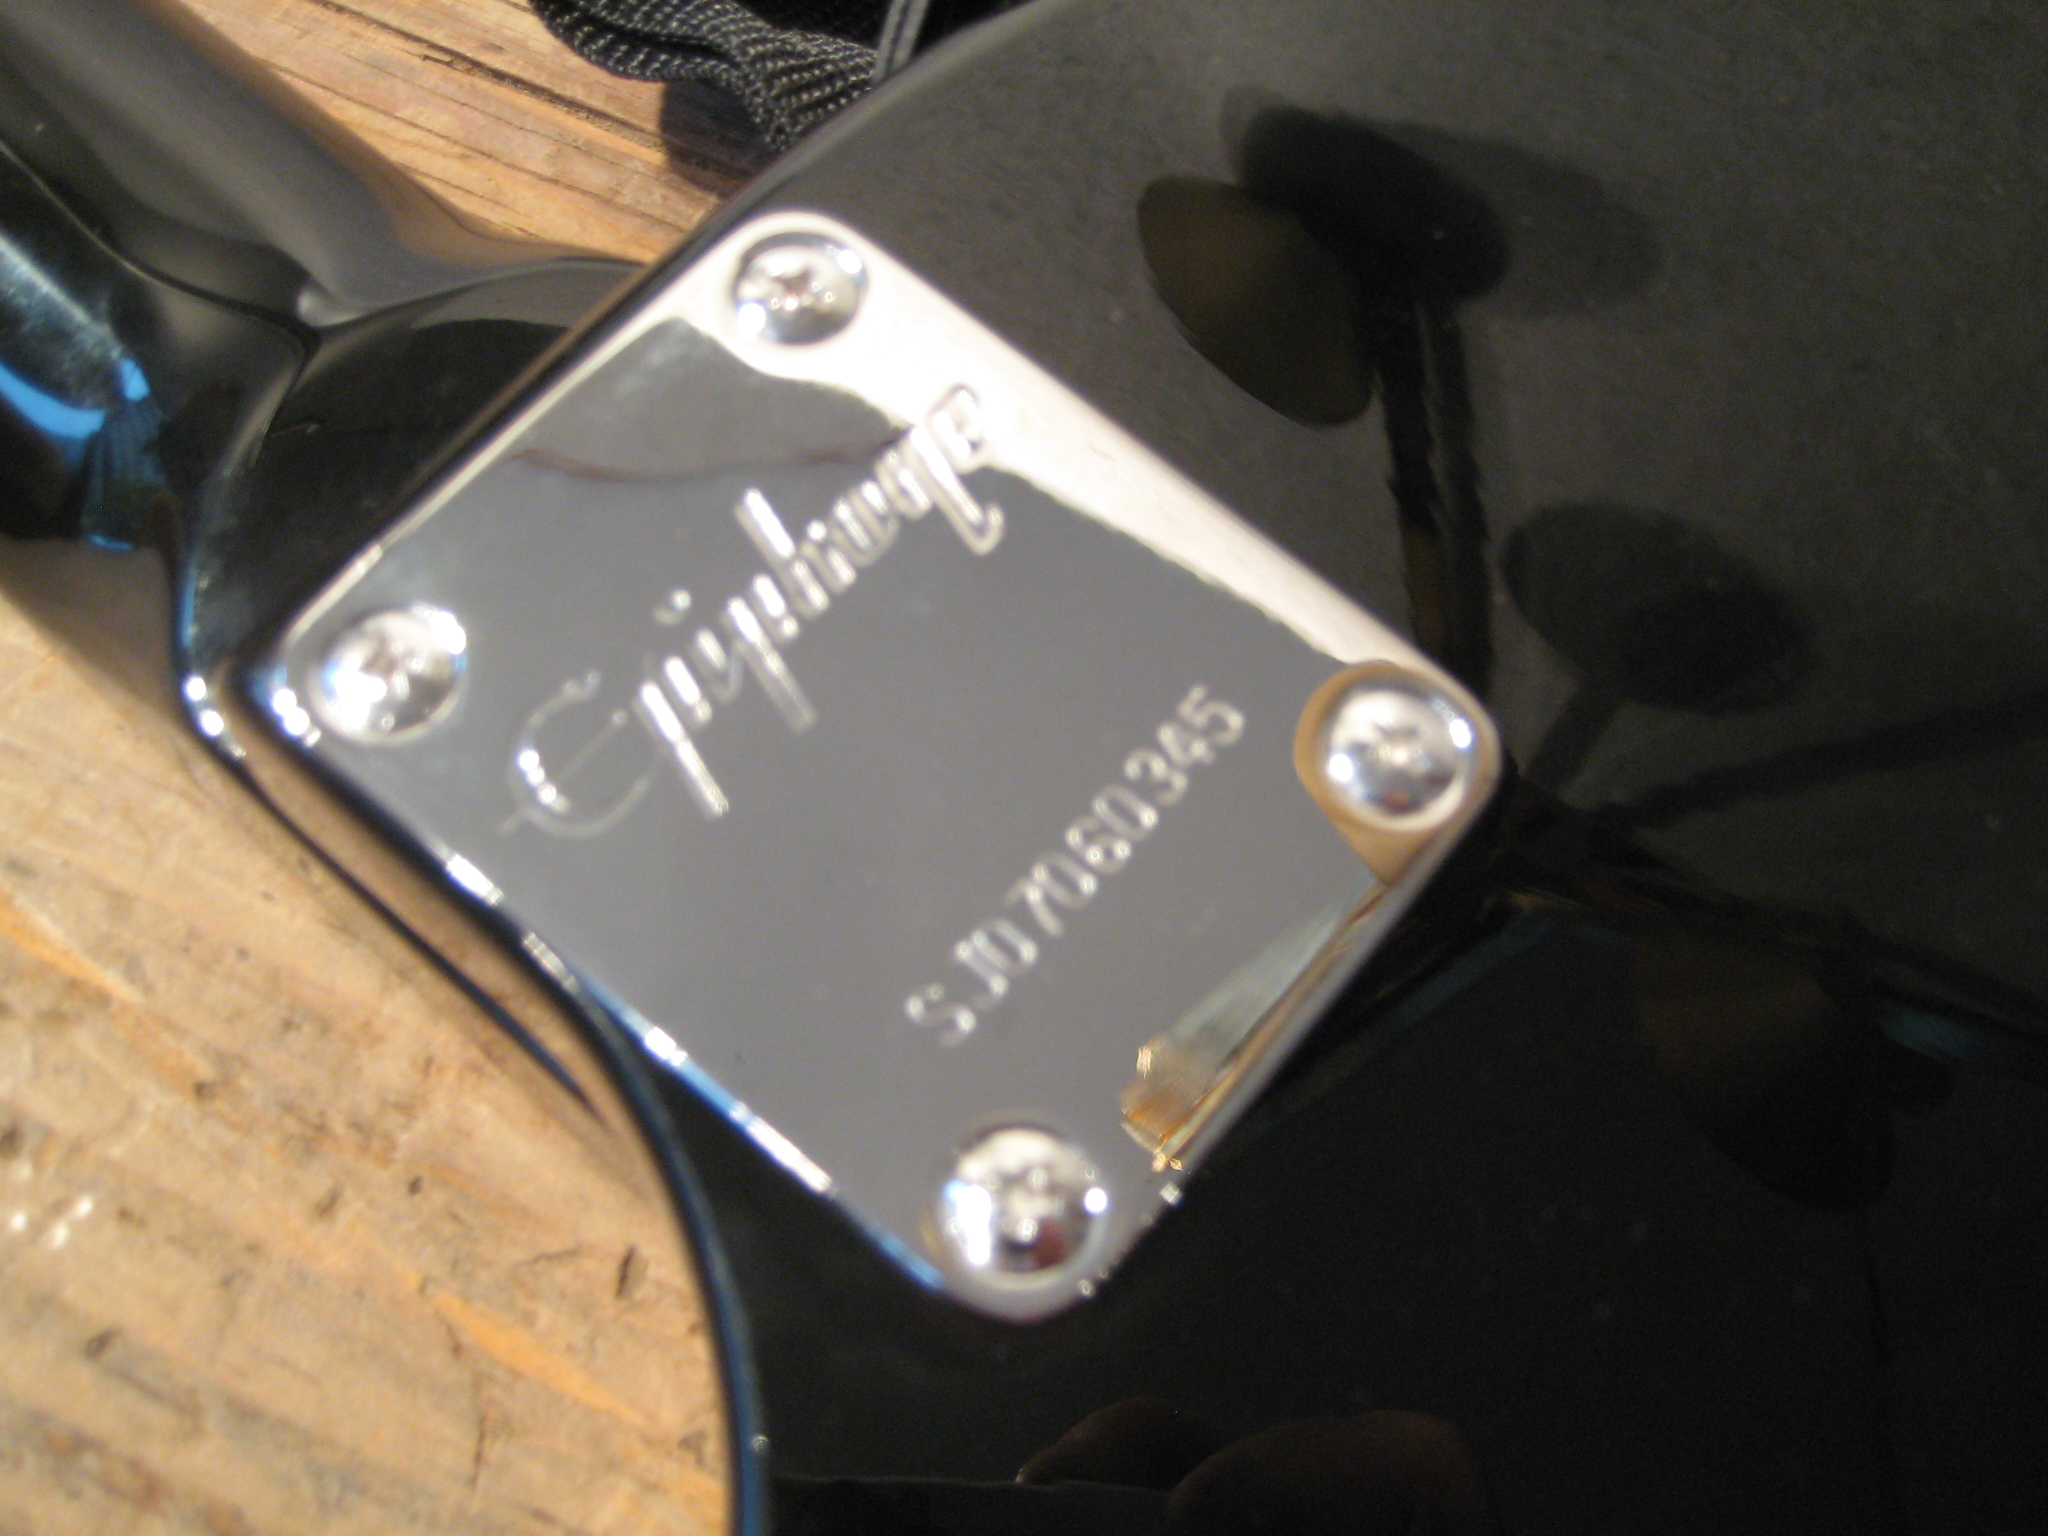 Epiphone used a serialnumber system for their acoustic guitars..